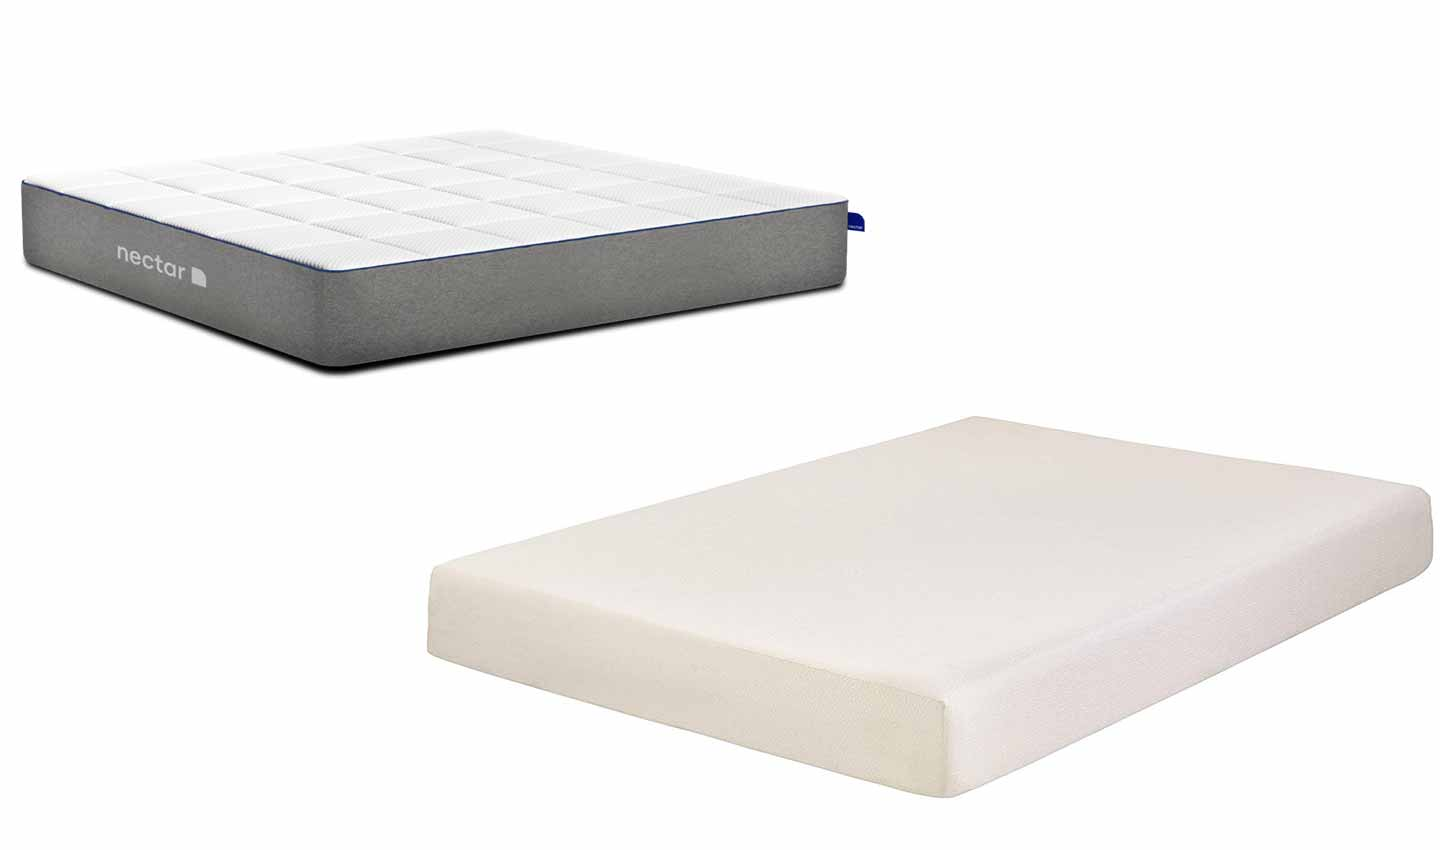 The 10 Best Memory Foam Mattresses To Buy In 2019